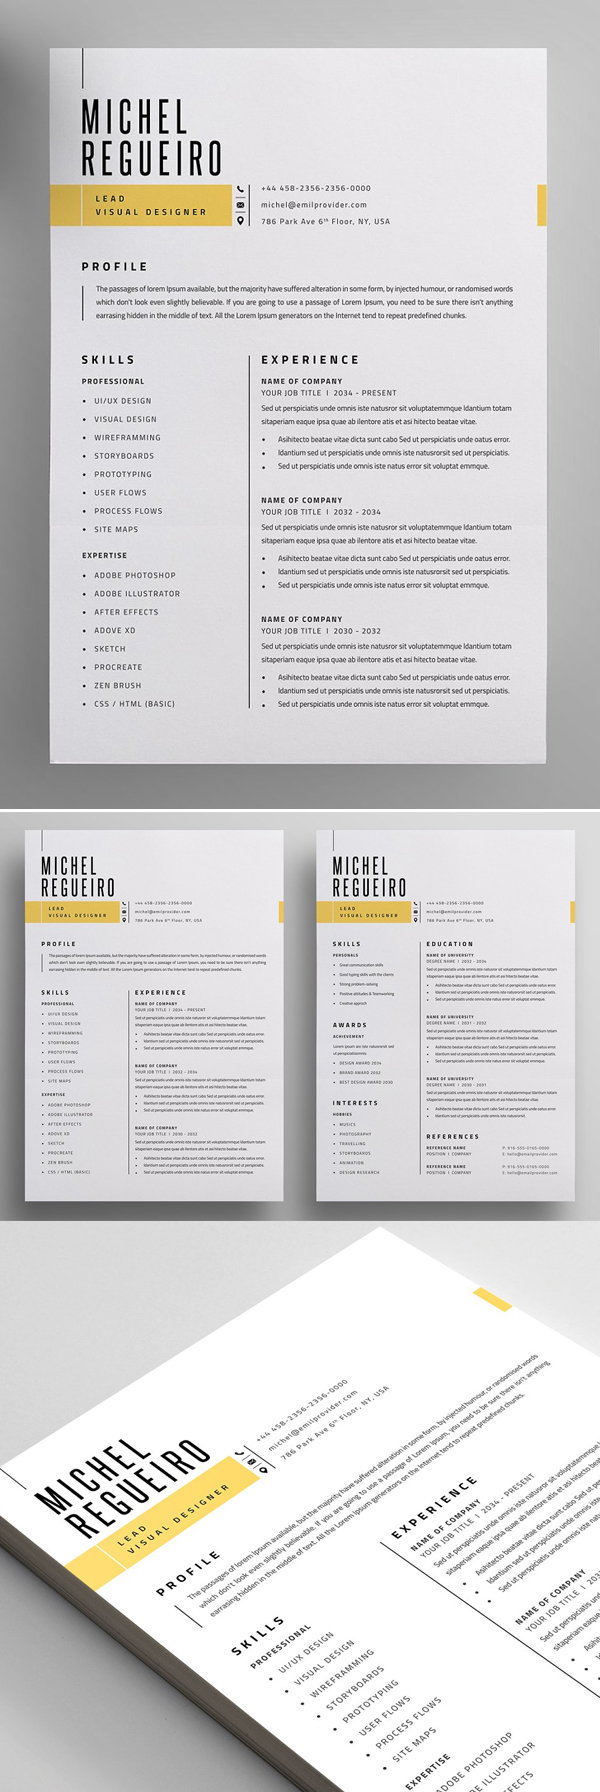 50 Best Resume Templates Of 2020 - 11